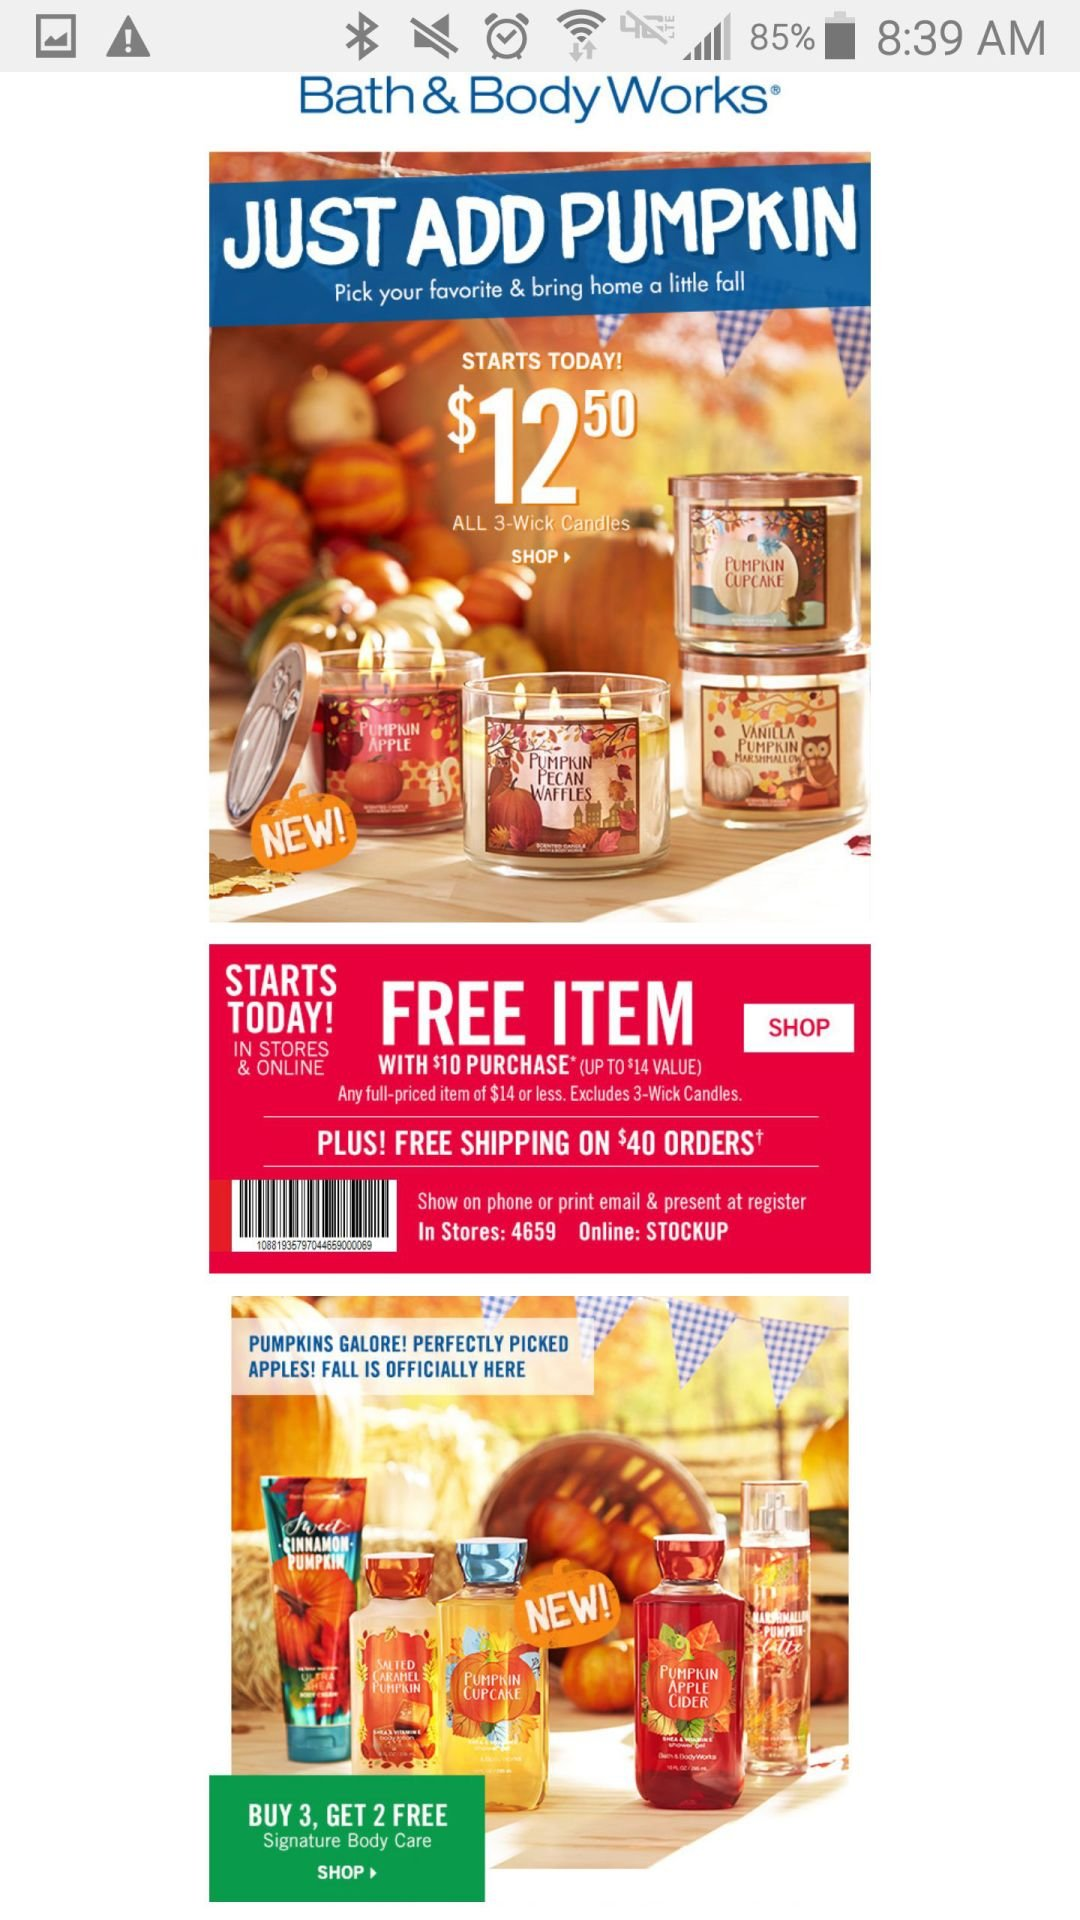 bath body works 12 50 candles free gift and 10 gift card rh kdhnews com